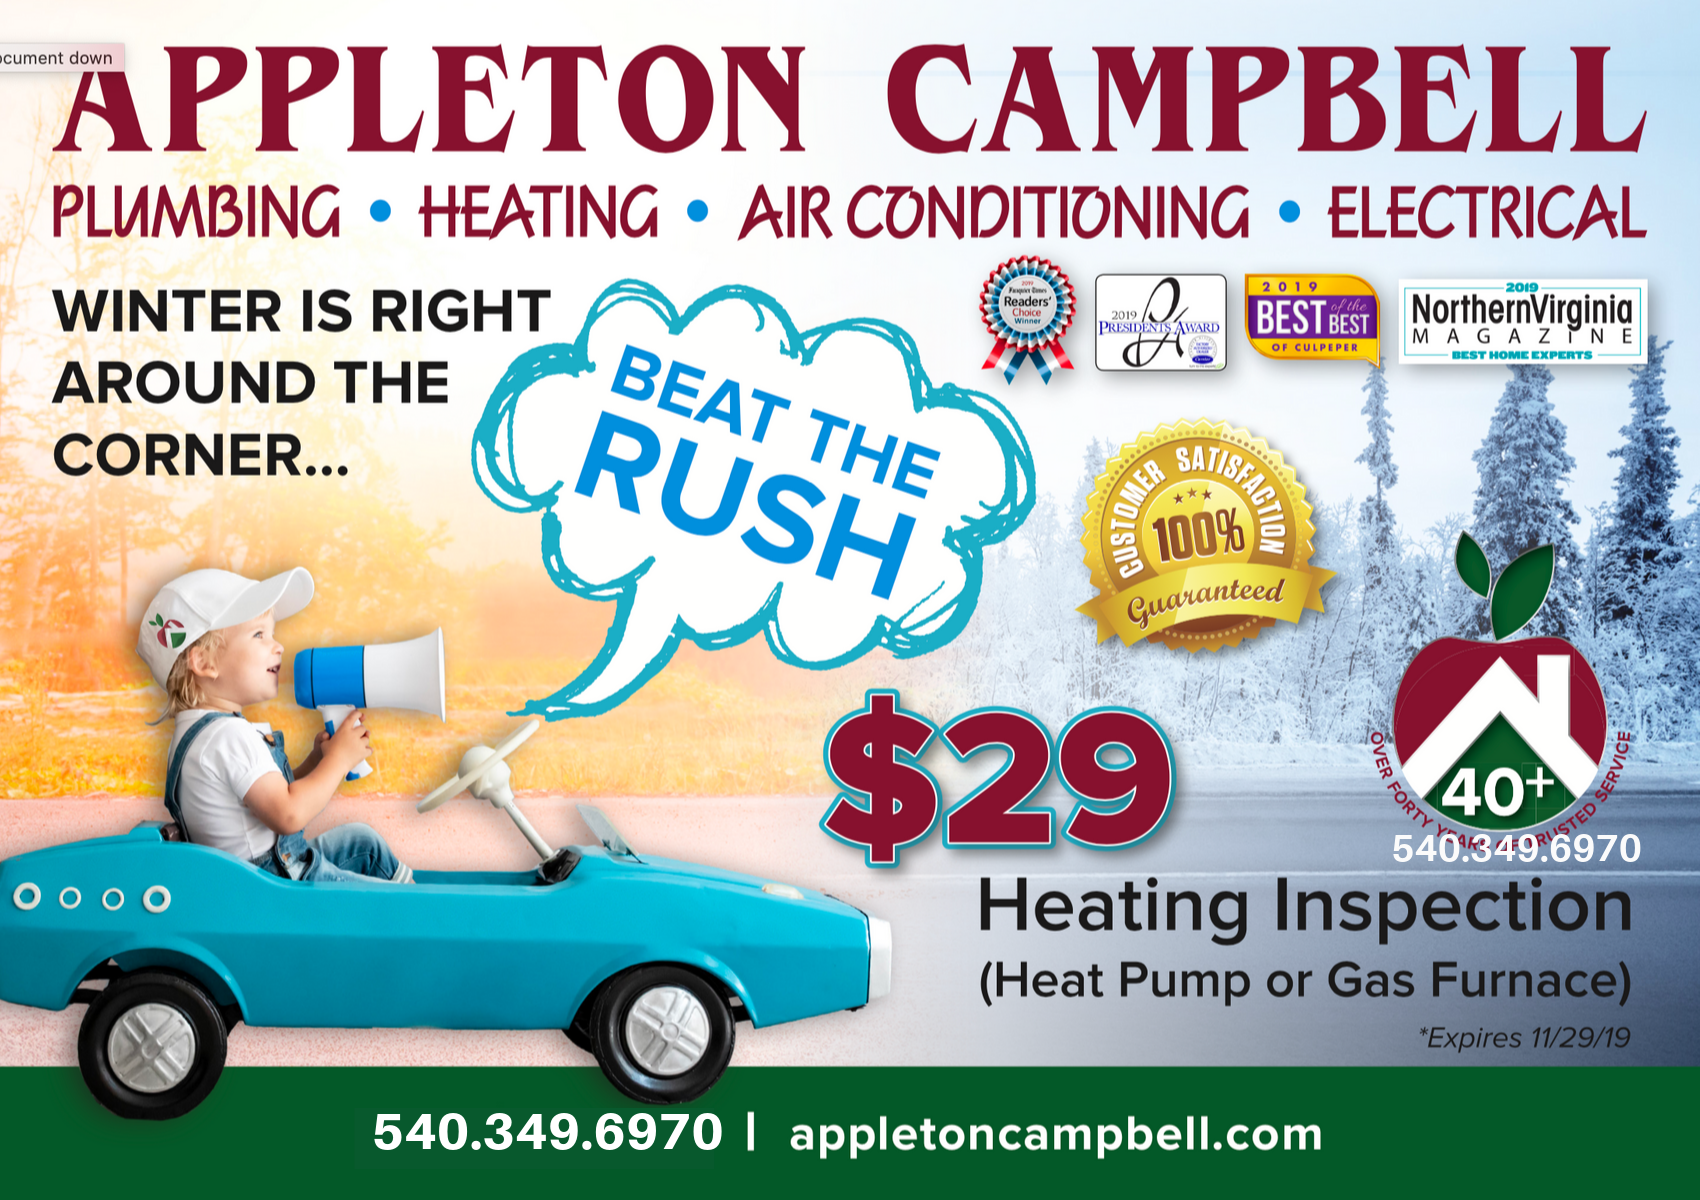 Virginia S Award Winning Plumbing Heating Air Electrical Specialists Trusted Over 40 Years Heating And Air Conditioning Hvac Heat Pump